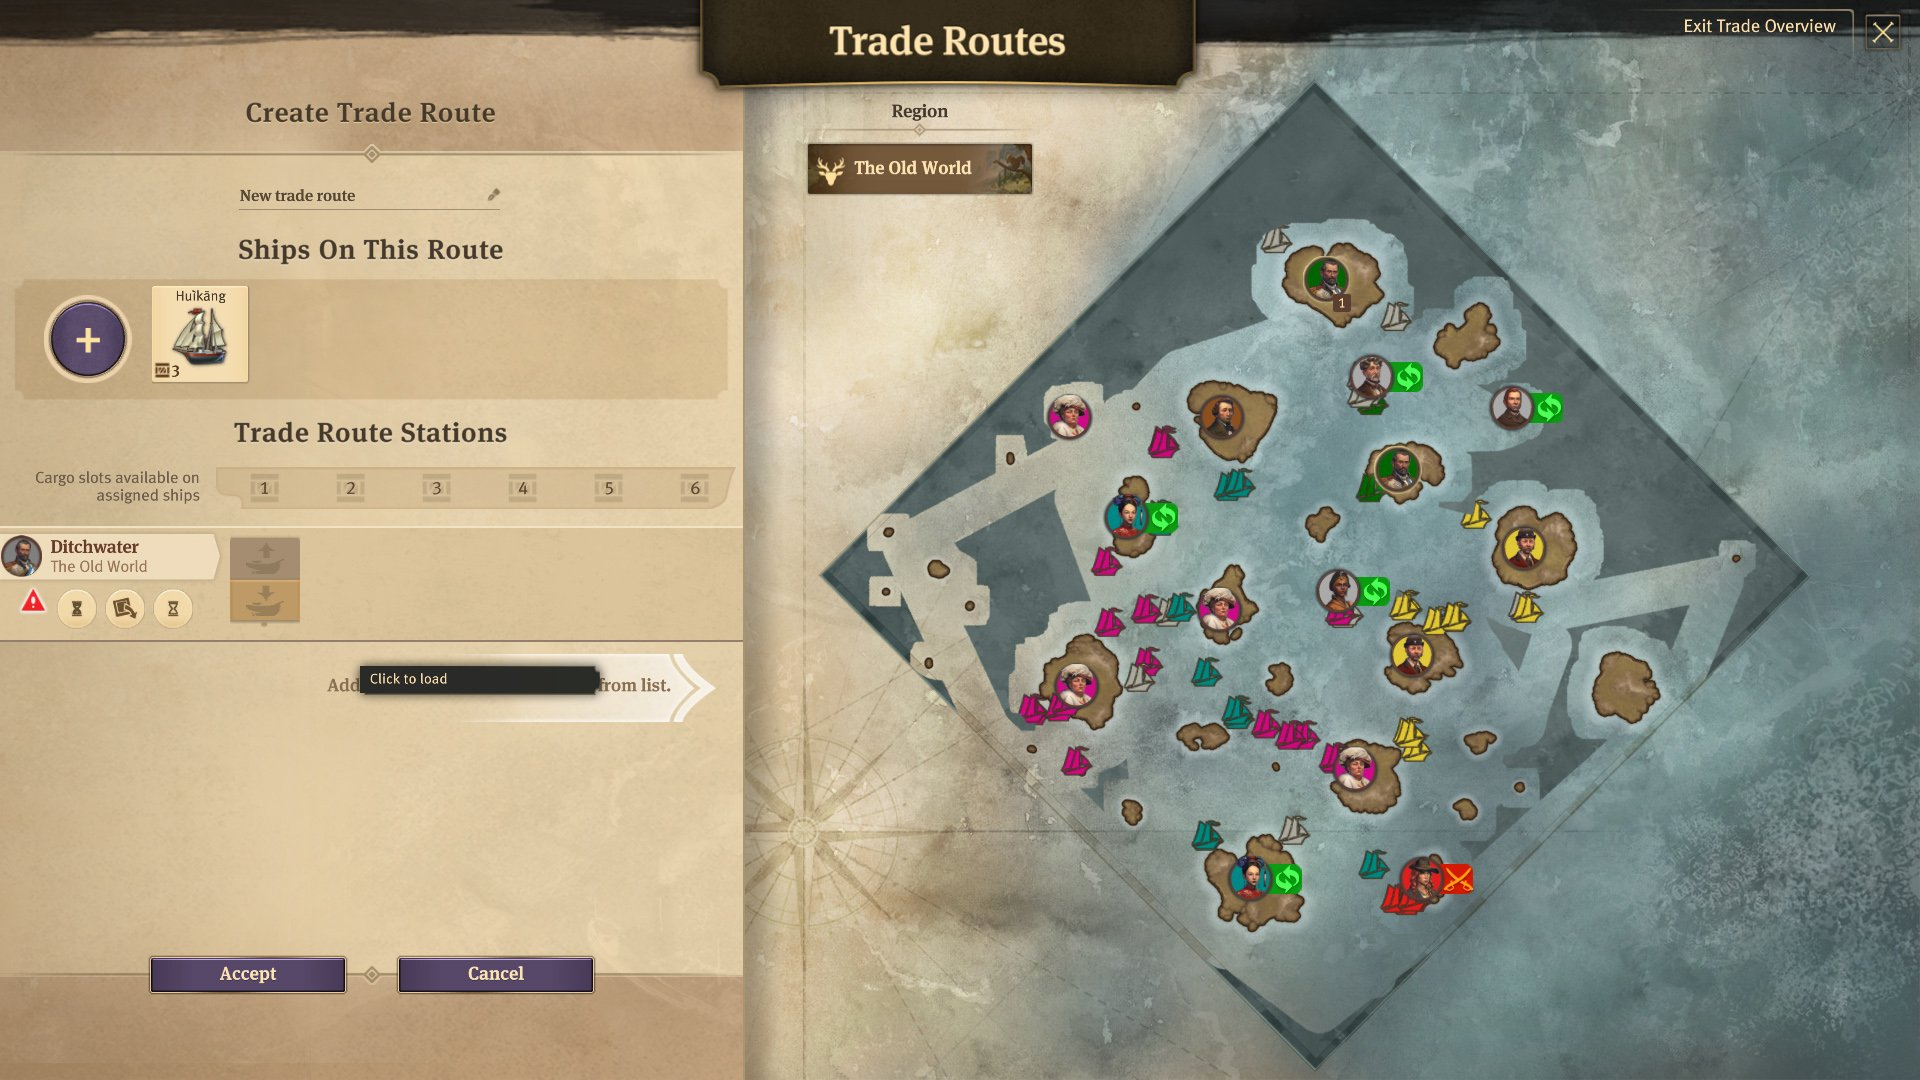 How to set up a trade route in Anno 1800 | Shacknews